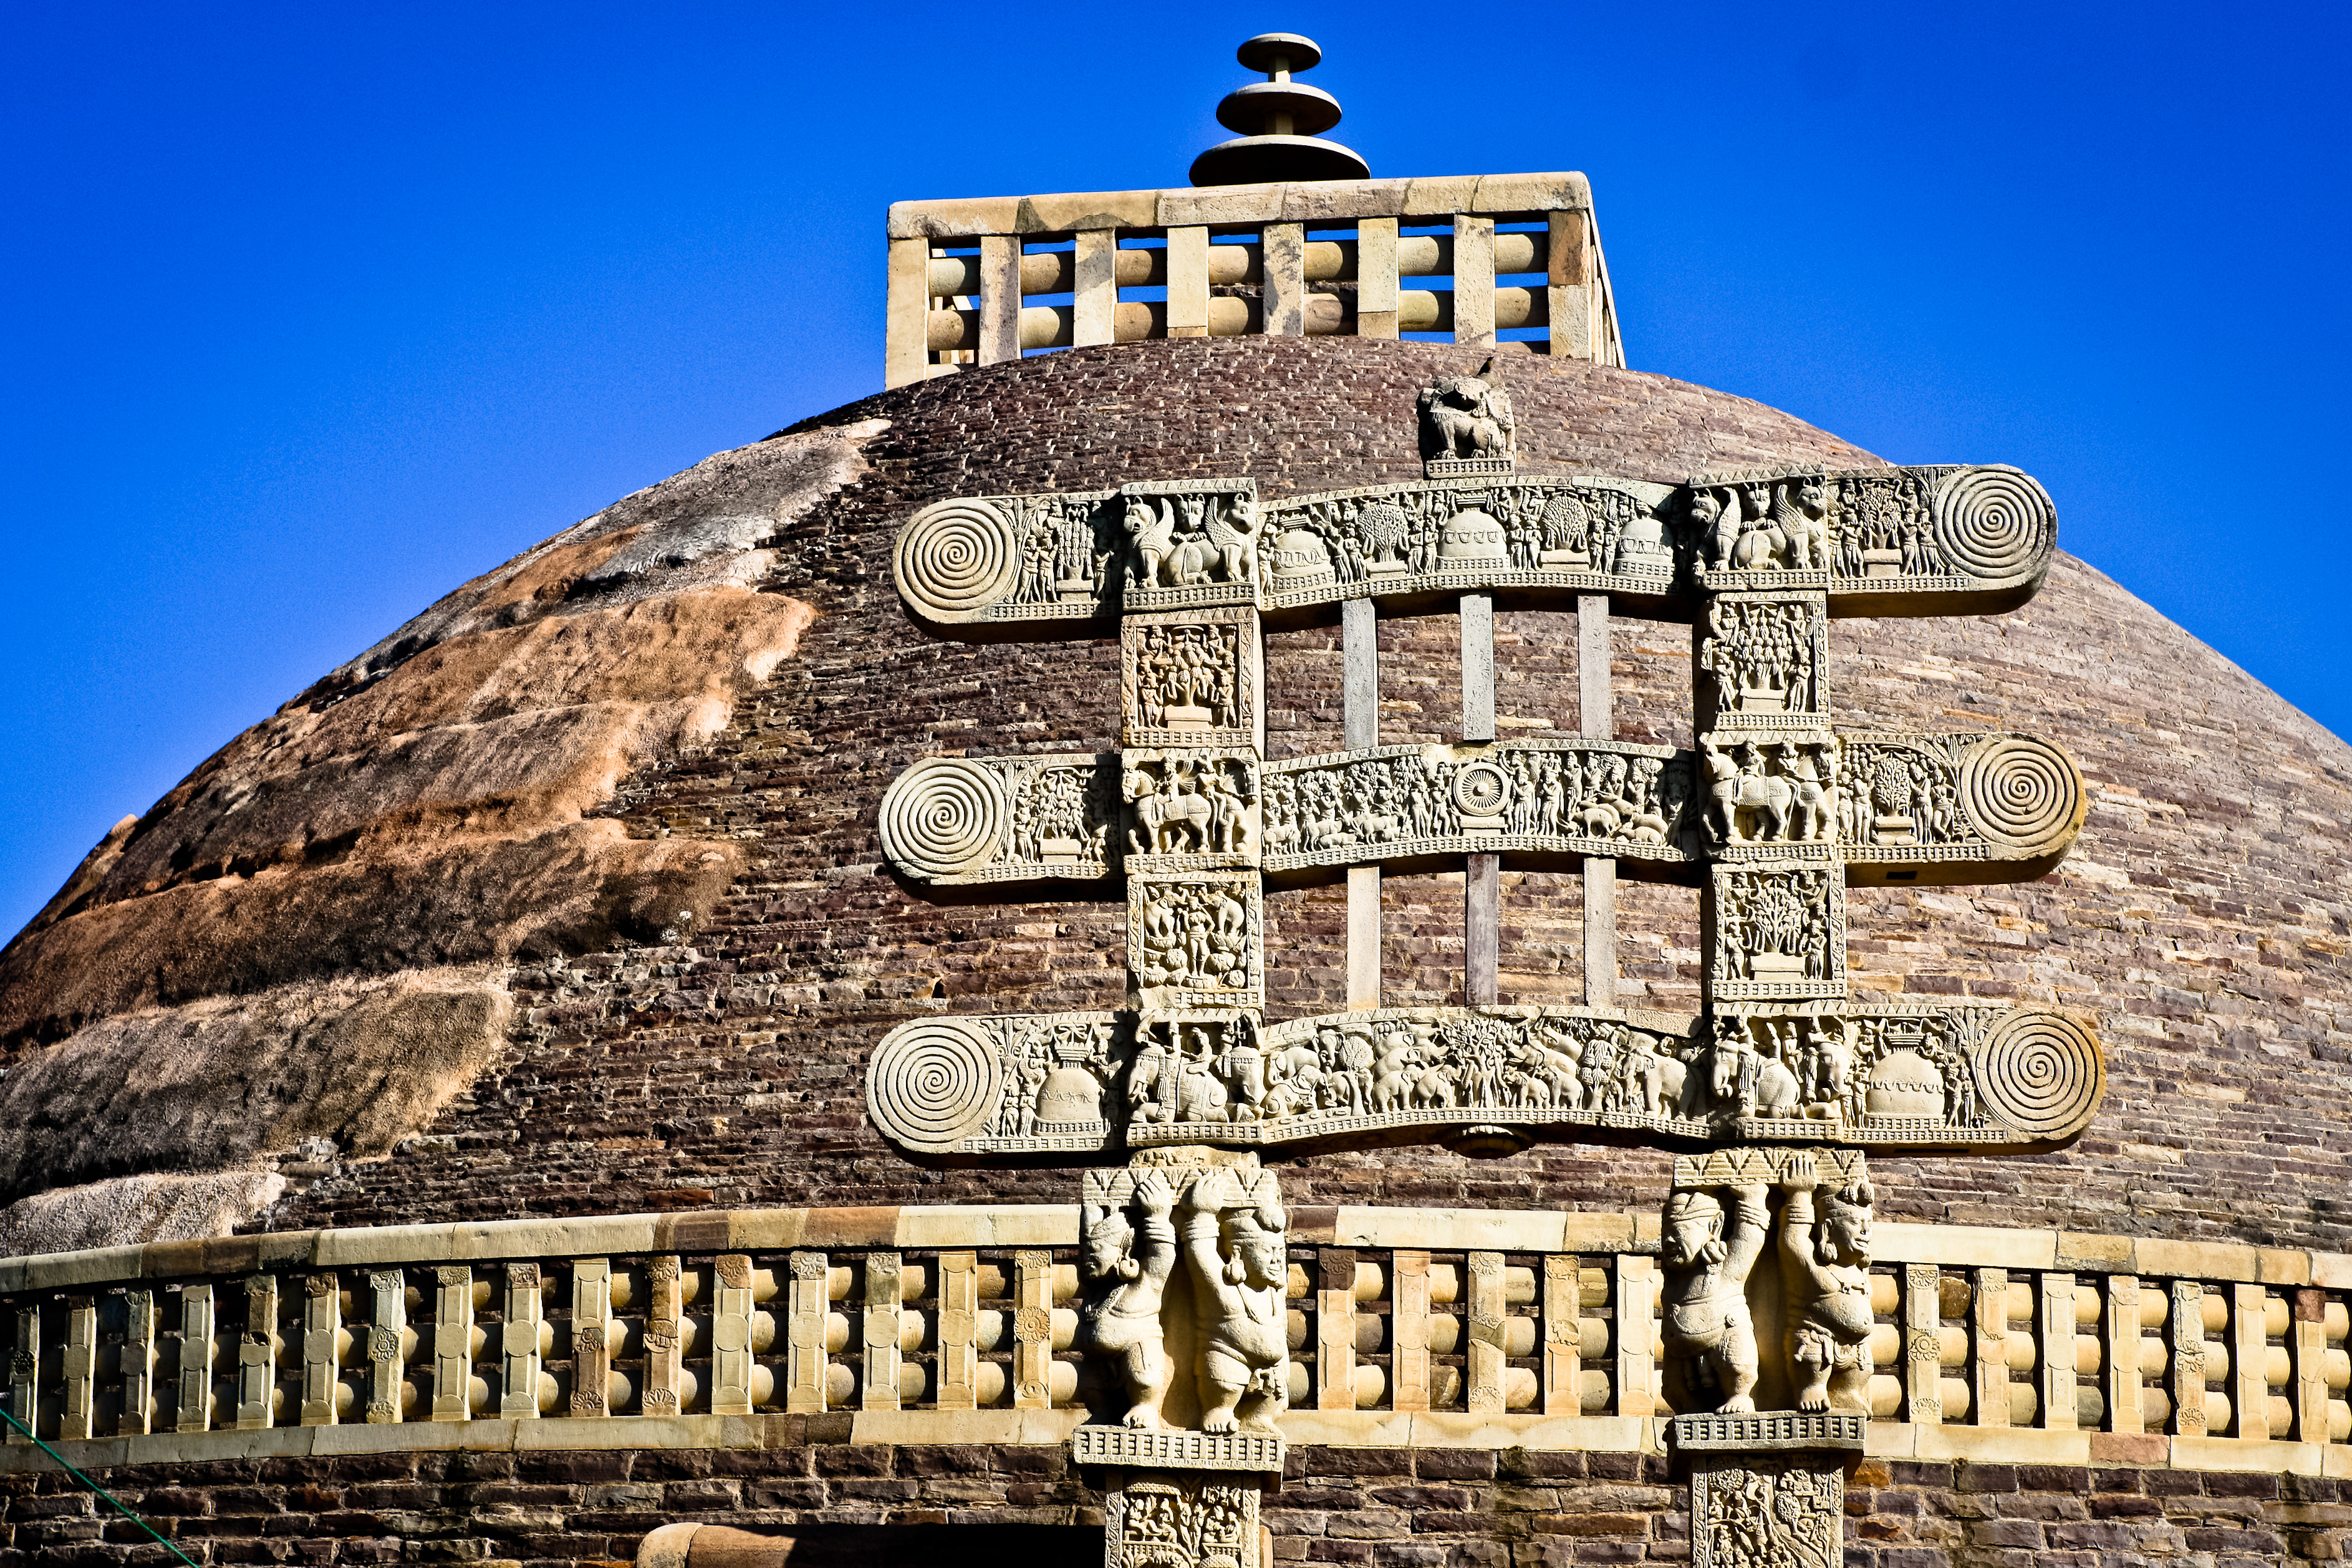 http://upload.wikimedia.org/wikipedia/commons/8/8d/Sanchi_stupa.jpg